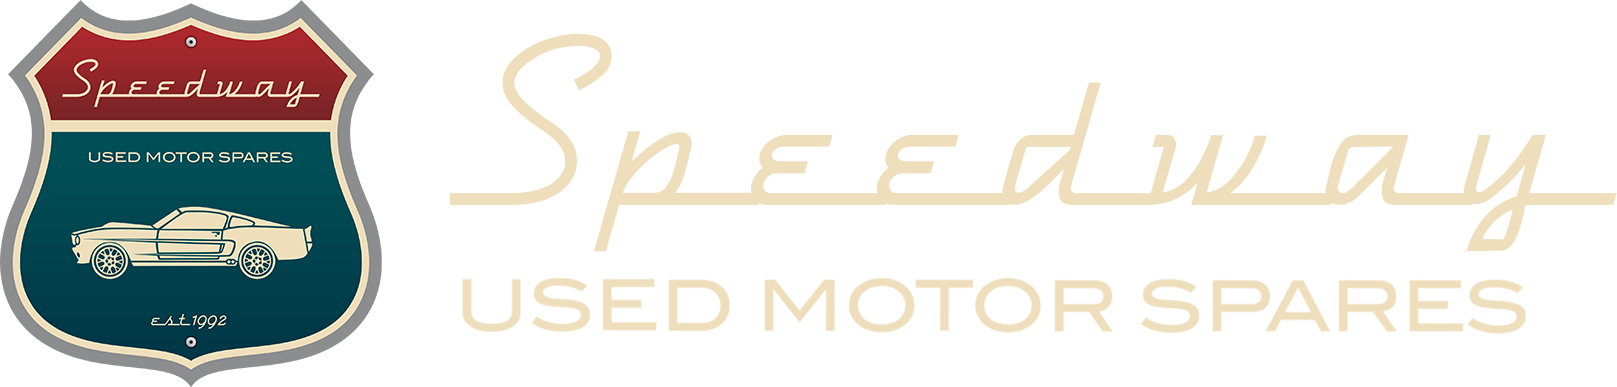 Speedway Used Motor Spares